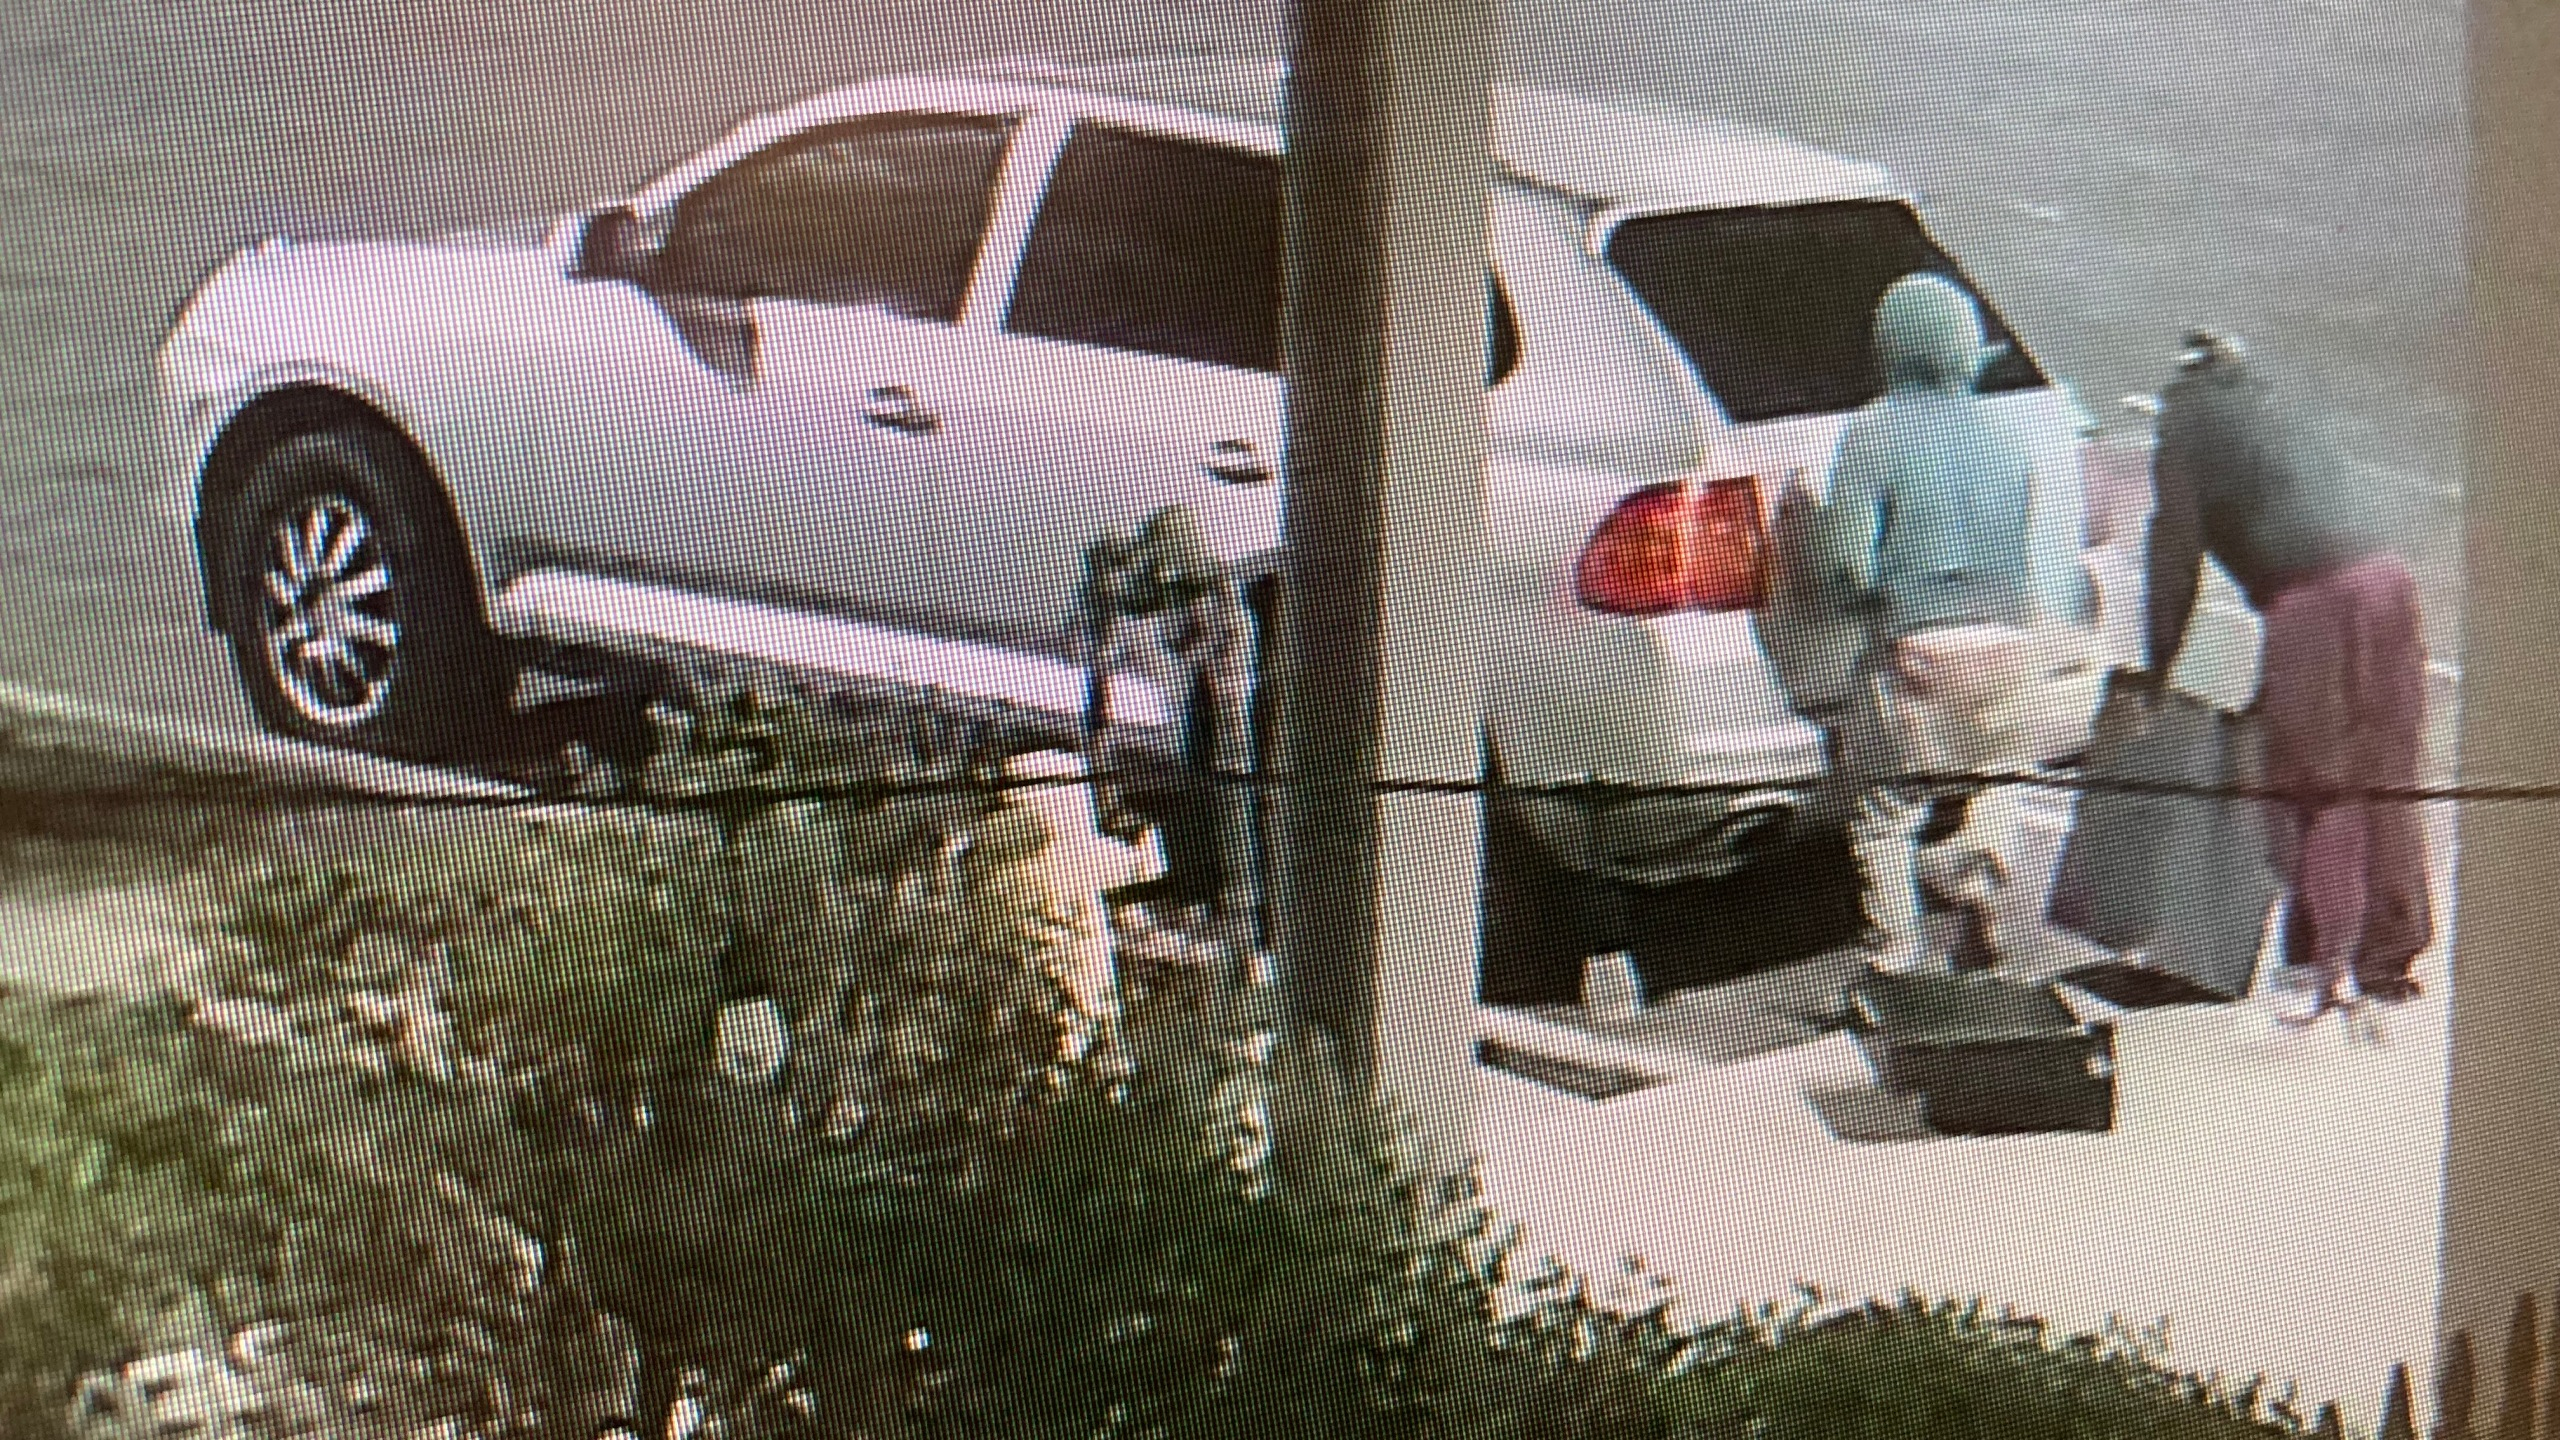 Three people driving a gray Porsche SUV burglarized four businesses on Oct. 5, 2021, according to the Santa Barbara County Sheriff's Office. (SBCSO)